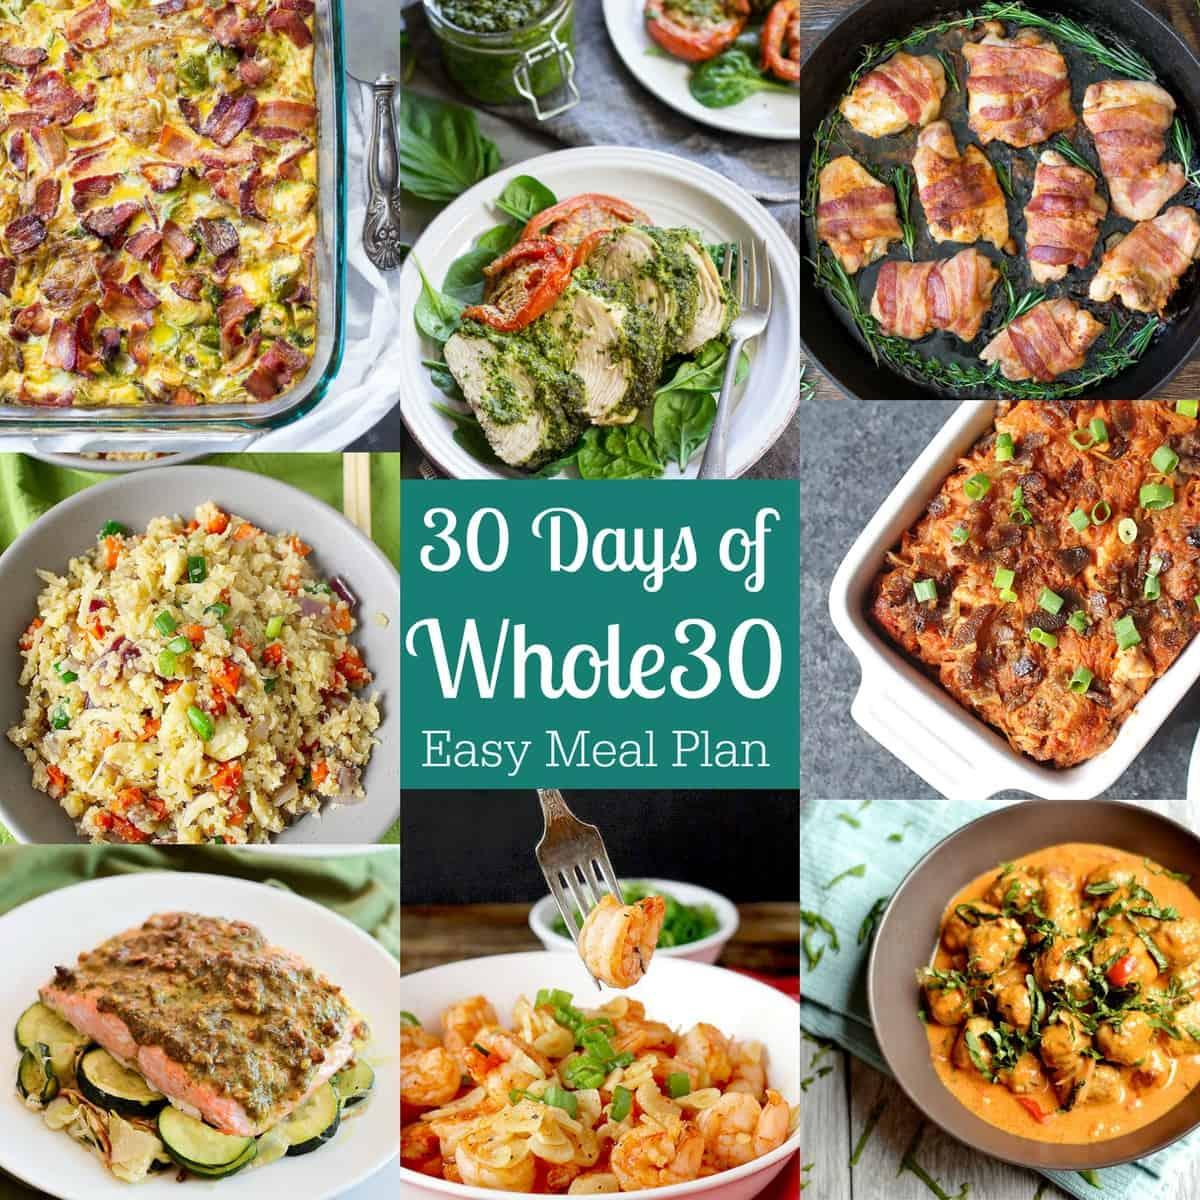 30 Minuten Küche Easy Cooking 30 Days Of Whole30 Easy Meal Plan 43 Recipes Paleo